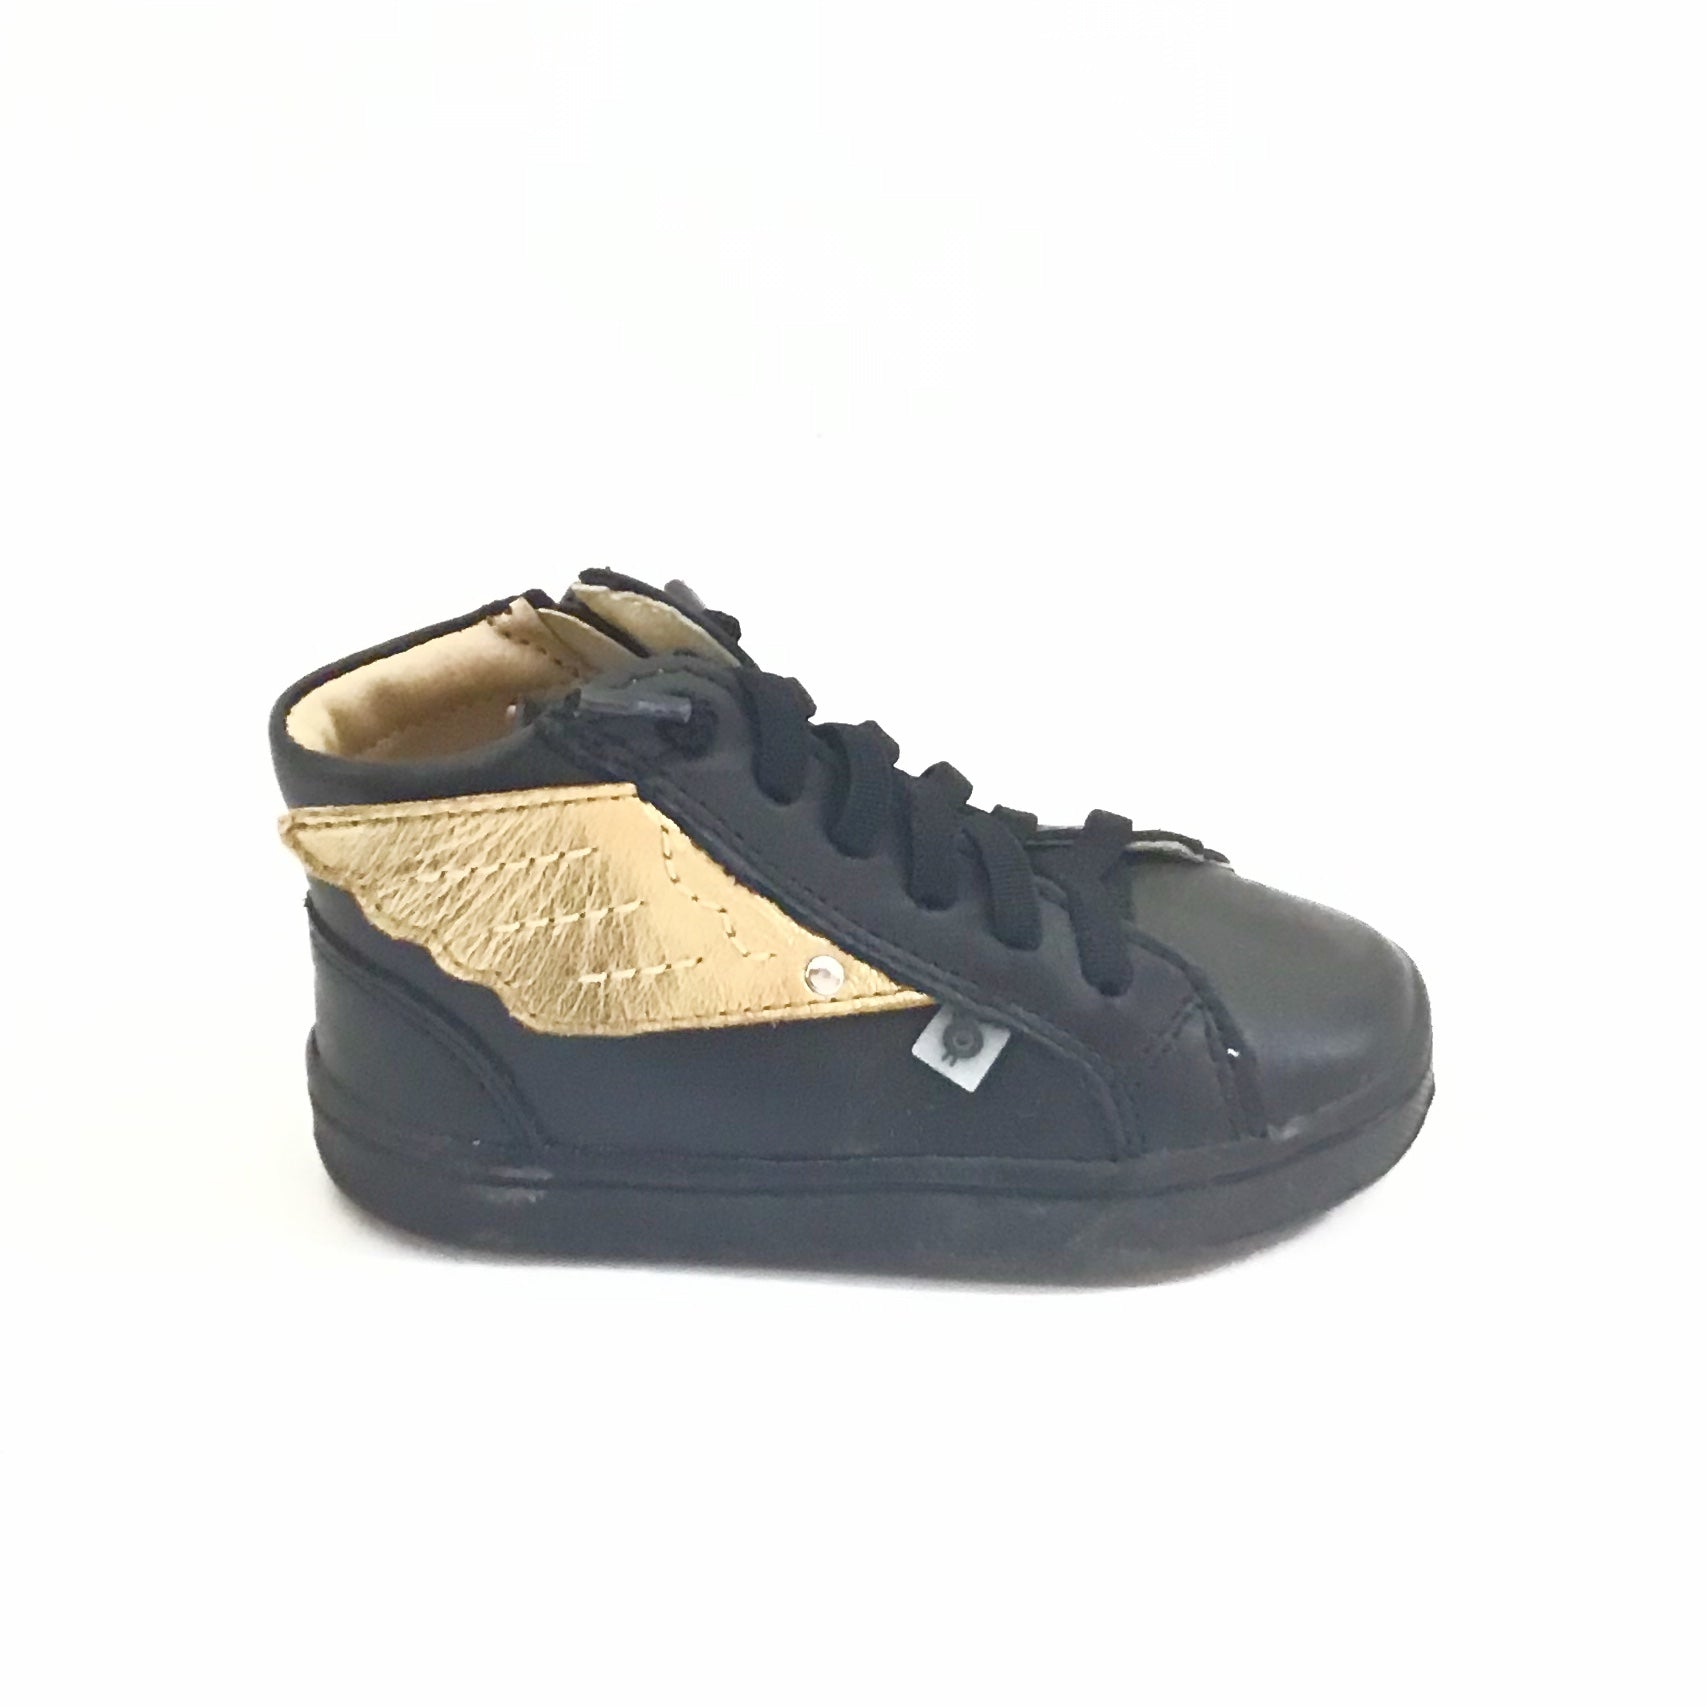 Old Soles Black Sneaker with Gold Wings and Laces